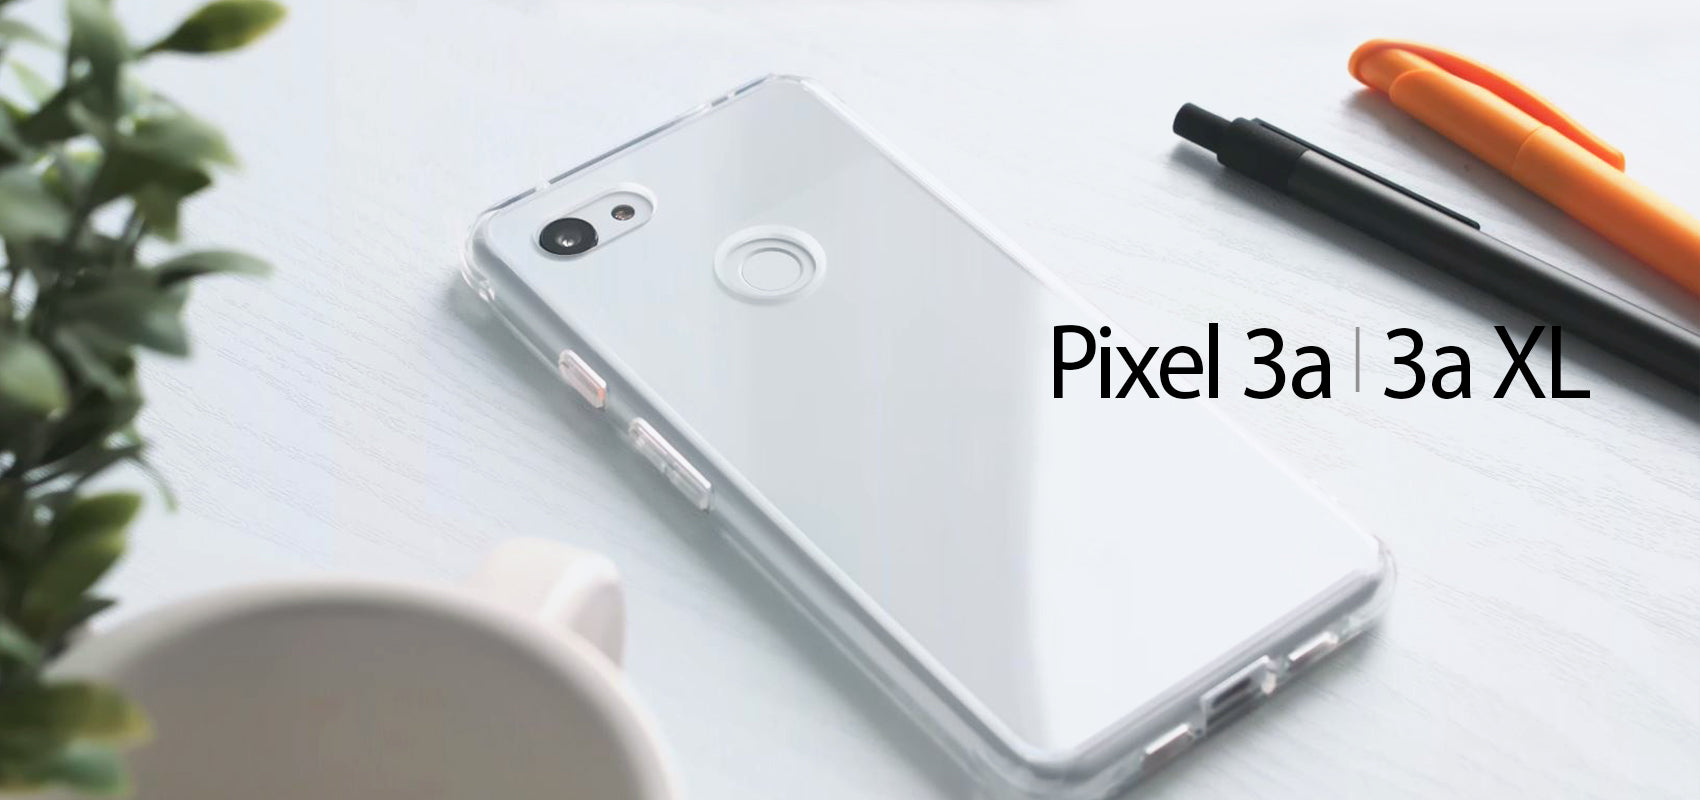 google pixel 3a, google pixel 3a xl, ringke fusion case, screen protector, clear case, anti scratch, protective case